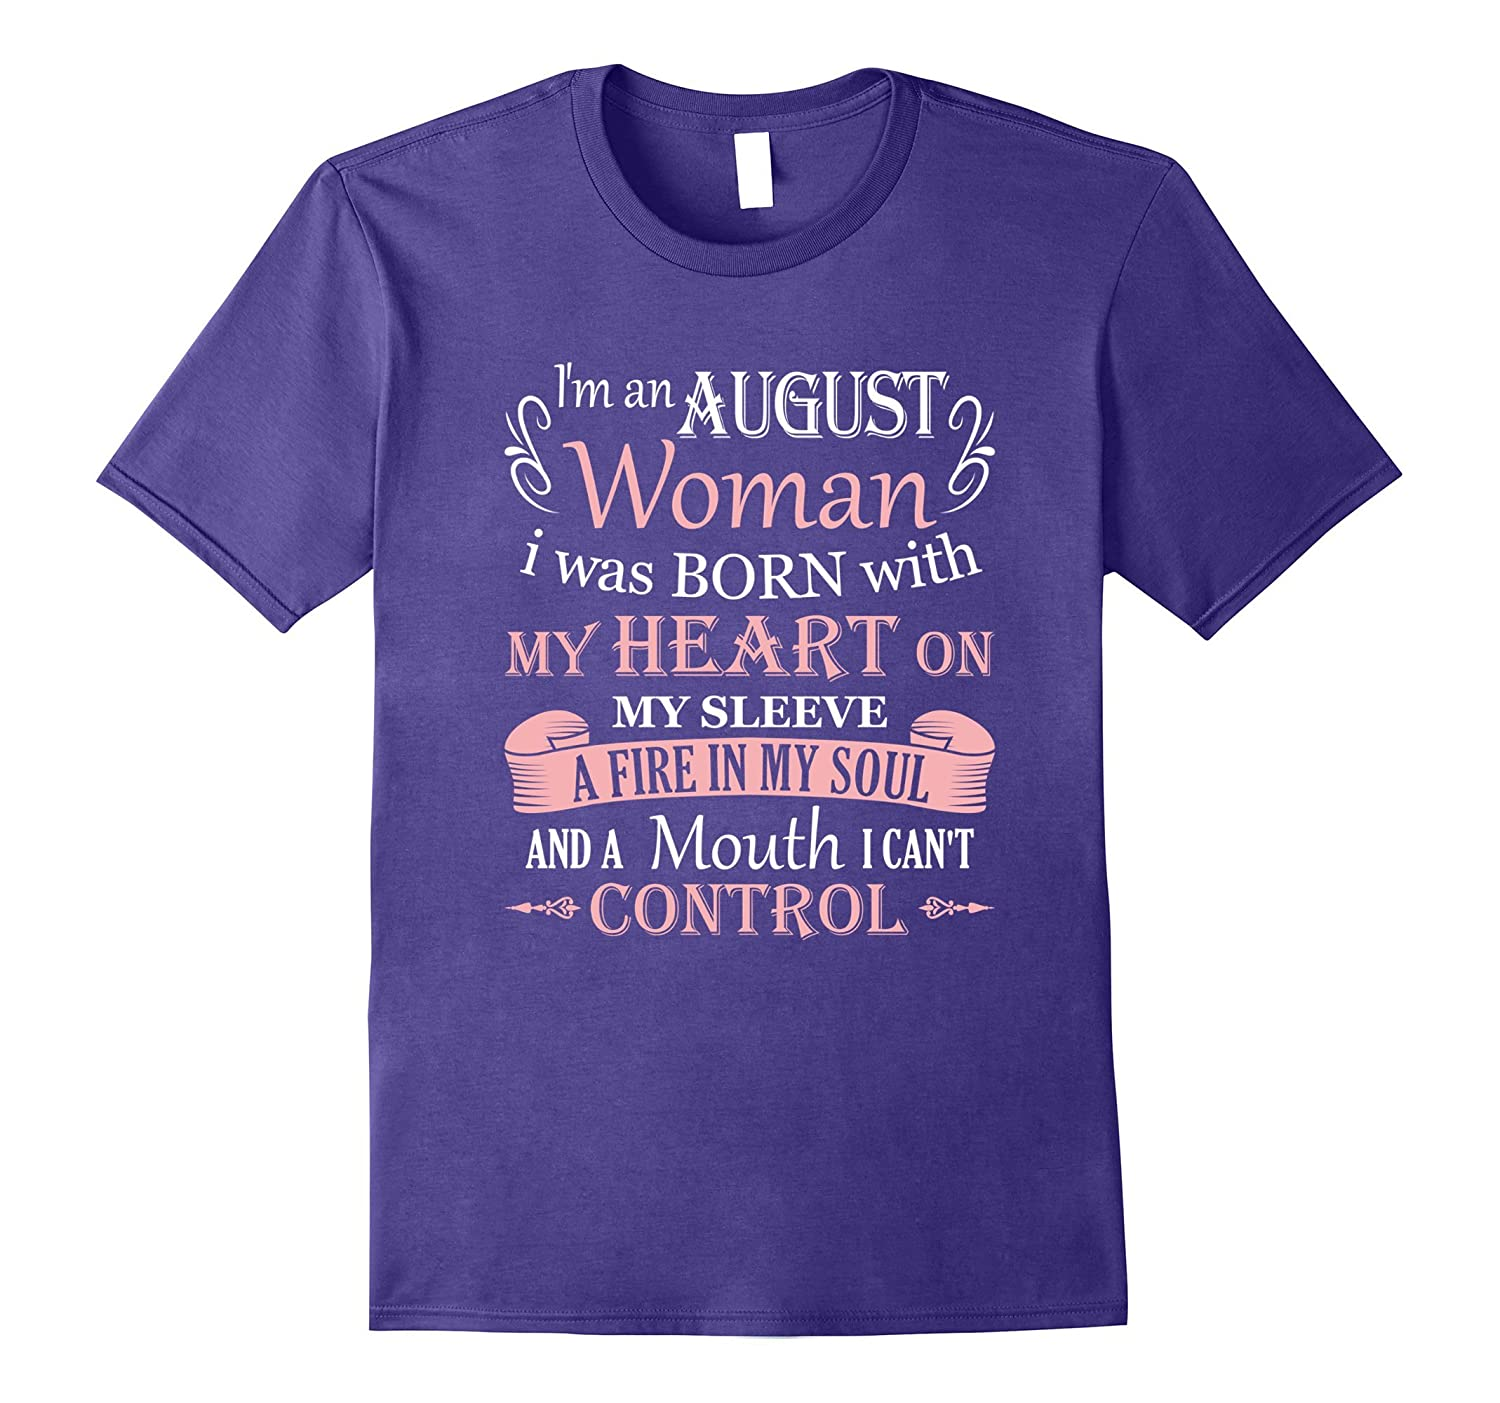 I'm an August Woman Birthday T-Shirt Gift Present for Her-BN